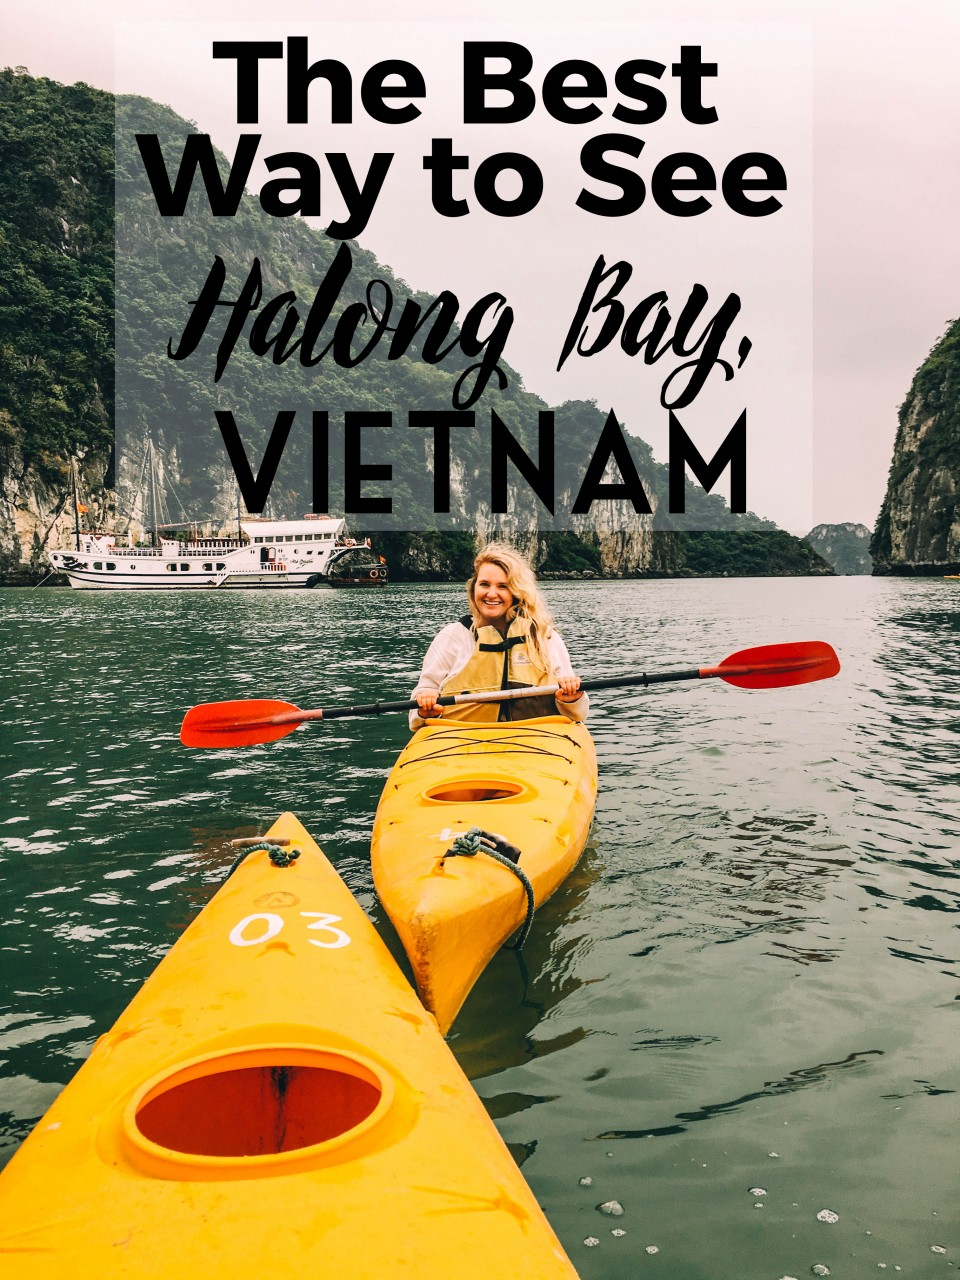 The Best Way to See Halong Bay, Vietnam